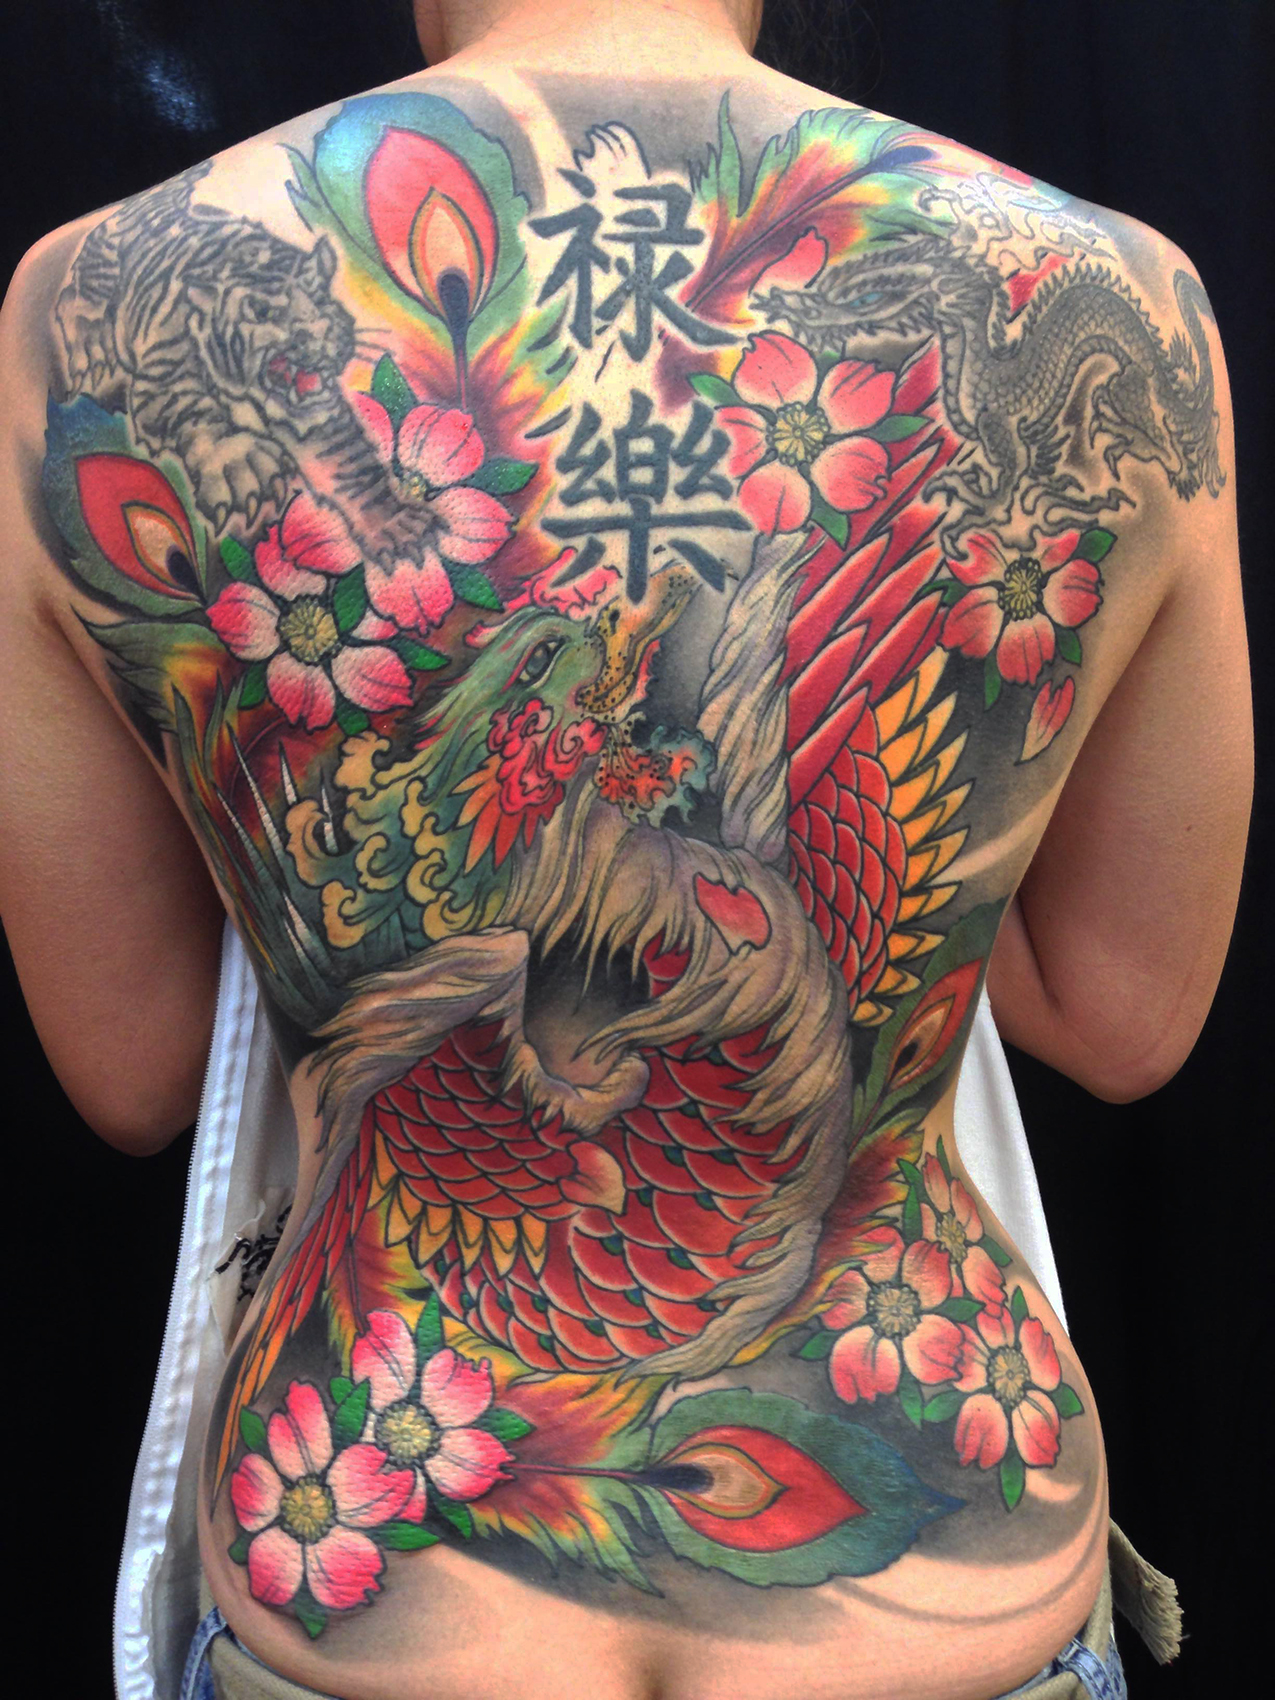 Japans Rich Imagery And Meanings Of Tattoos Funhouse Tattoo San Diego